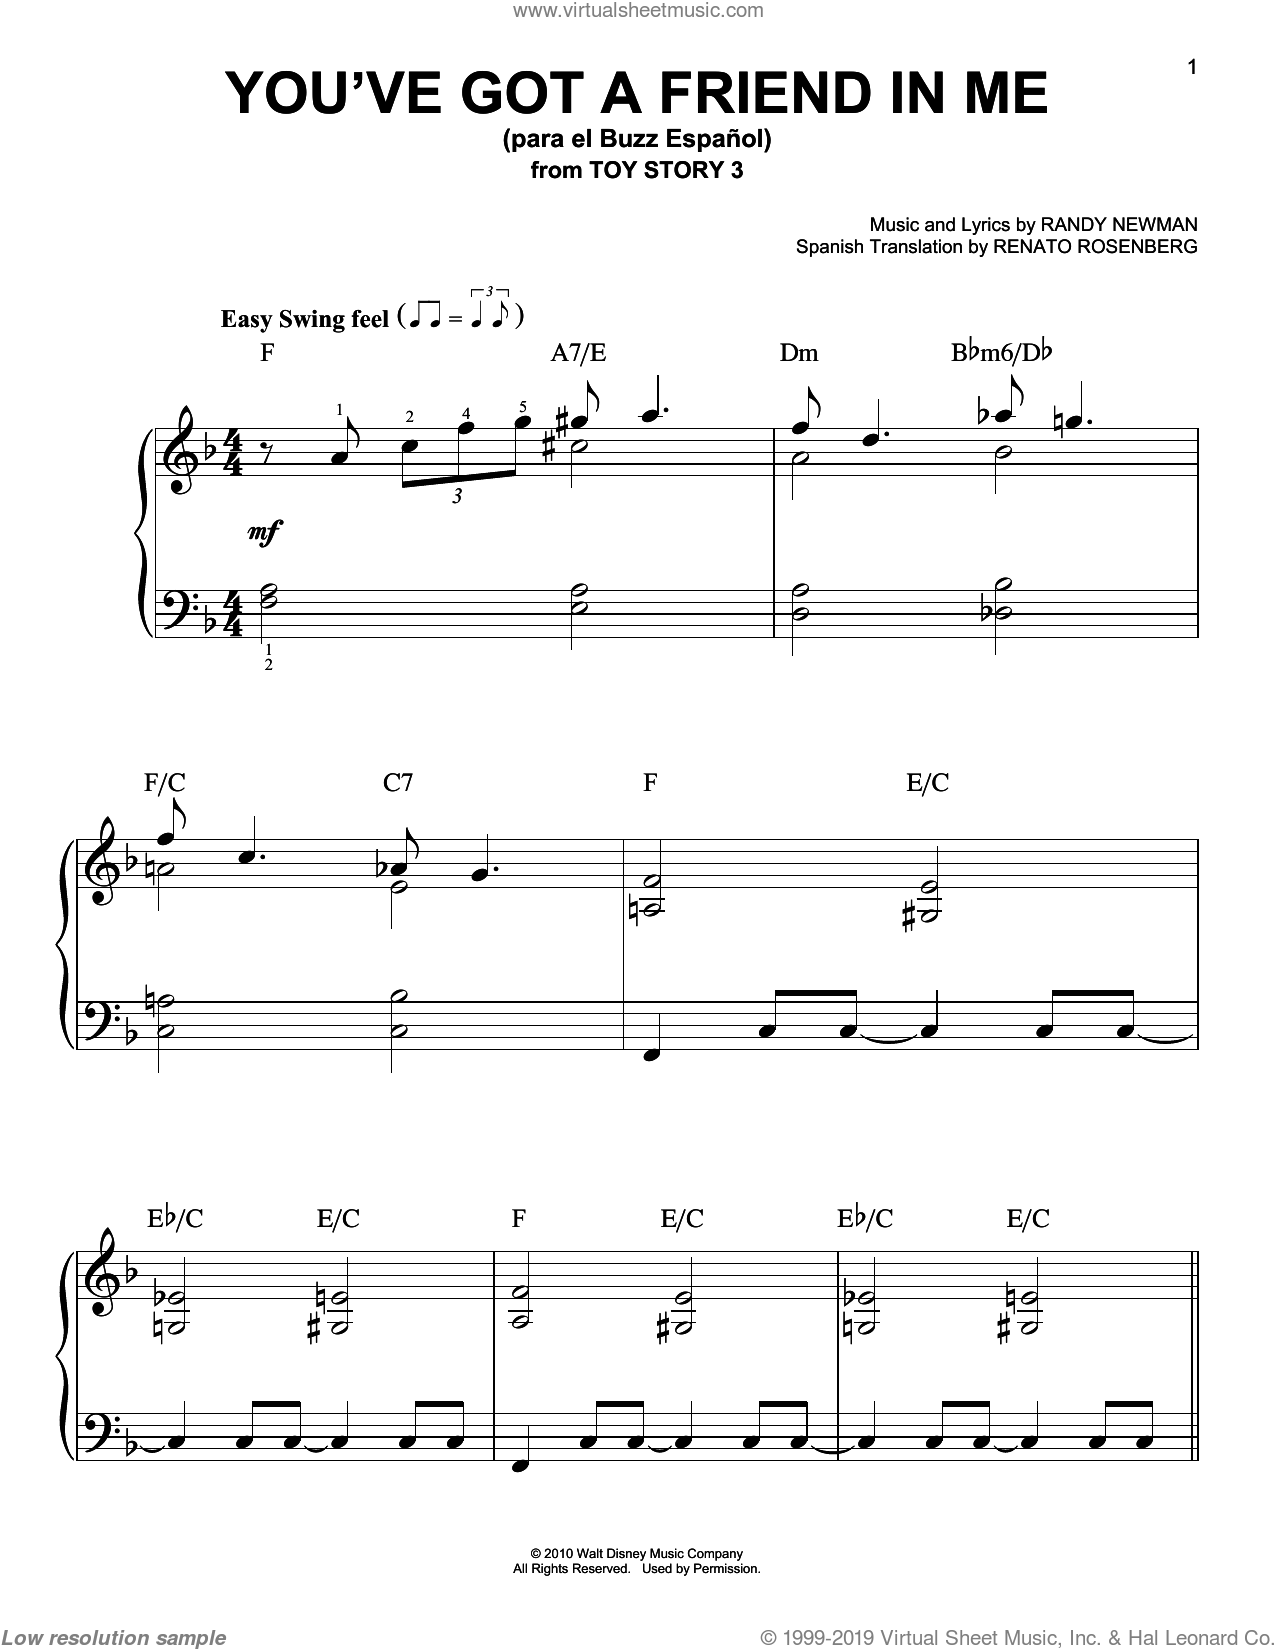 You've Got a Friend in Me (para el Buzz Espanol) (from Toy Story 3) sheet music for piano solo by Randy Newman, The Gipsy Kings, Toy Story 3 (Movie) and Renato Rosenberg, easy skill level